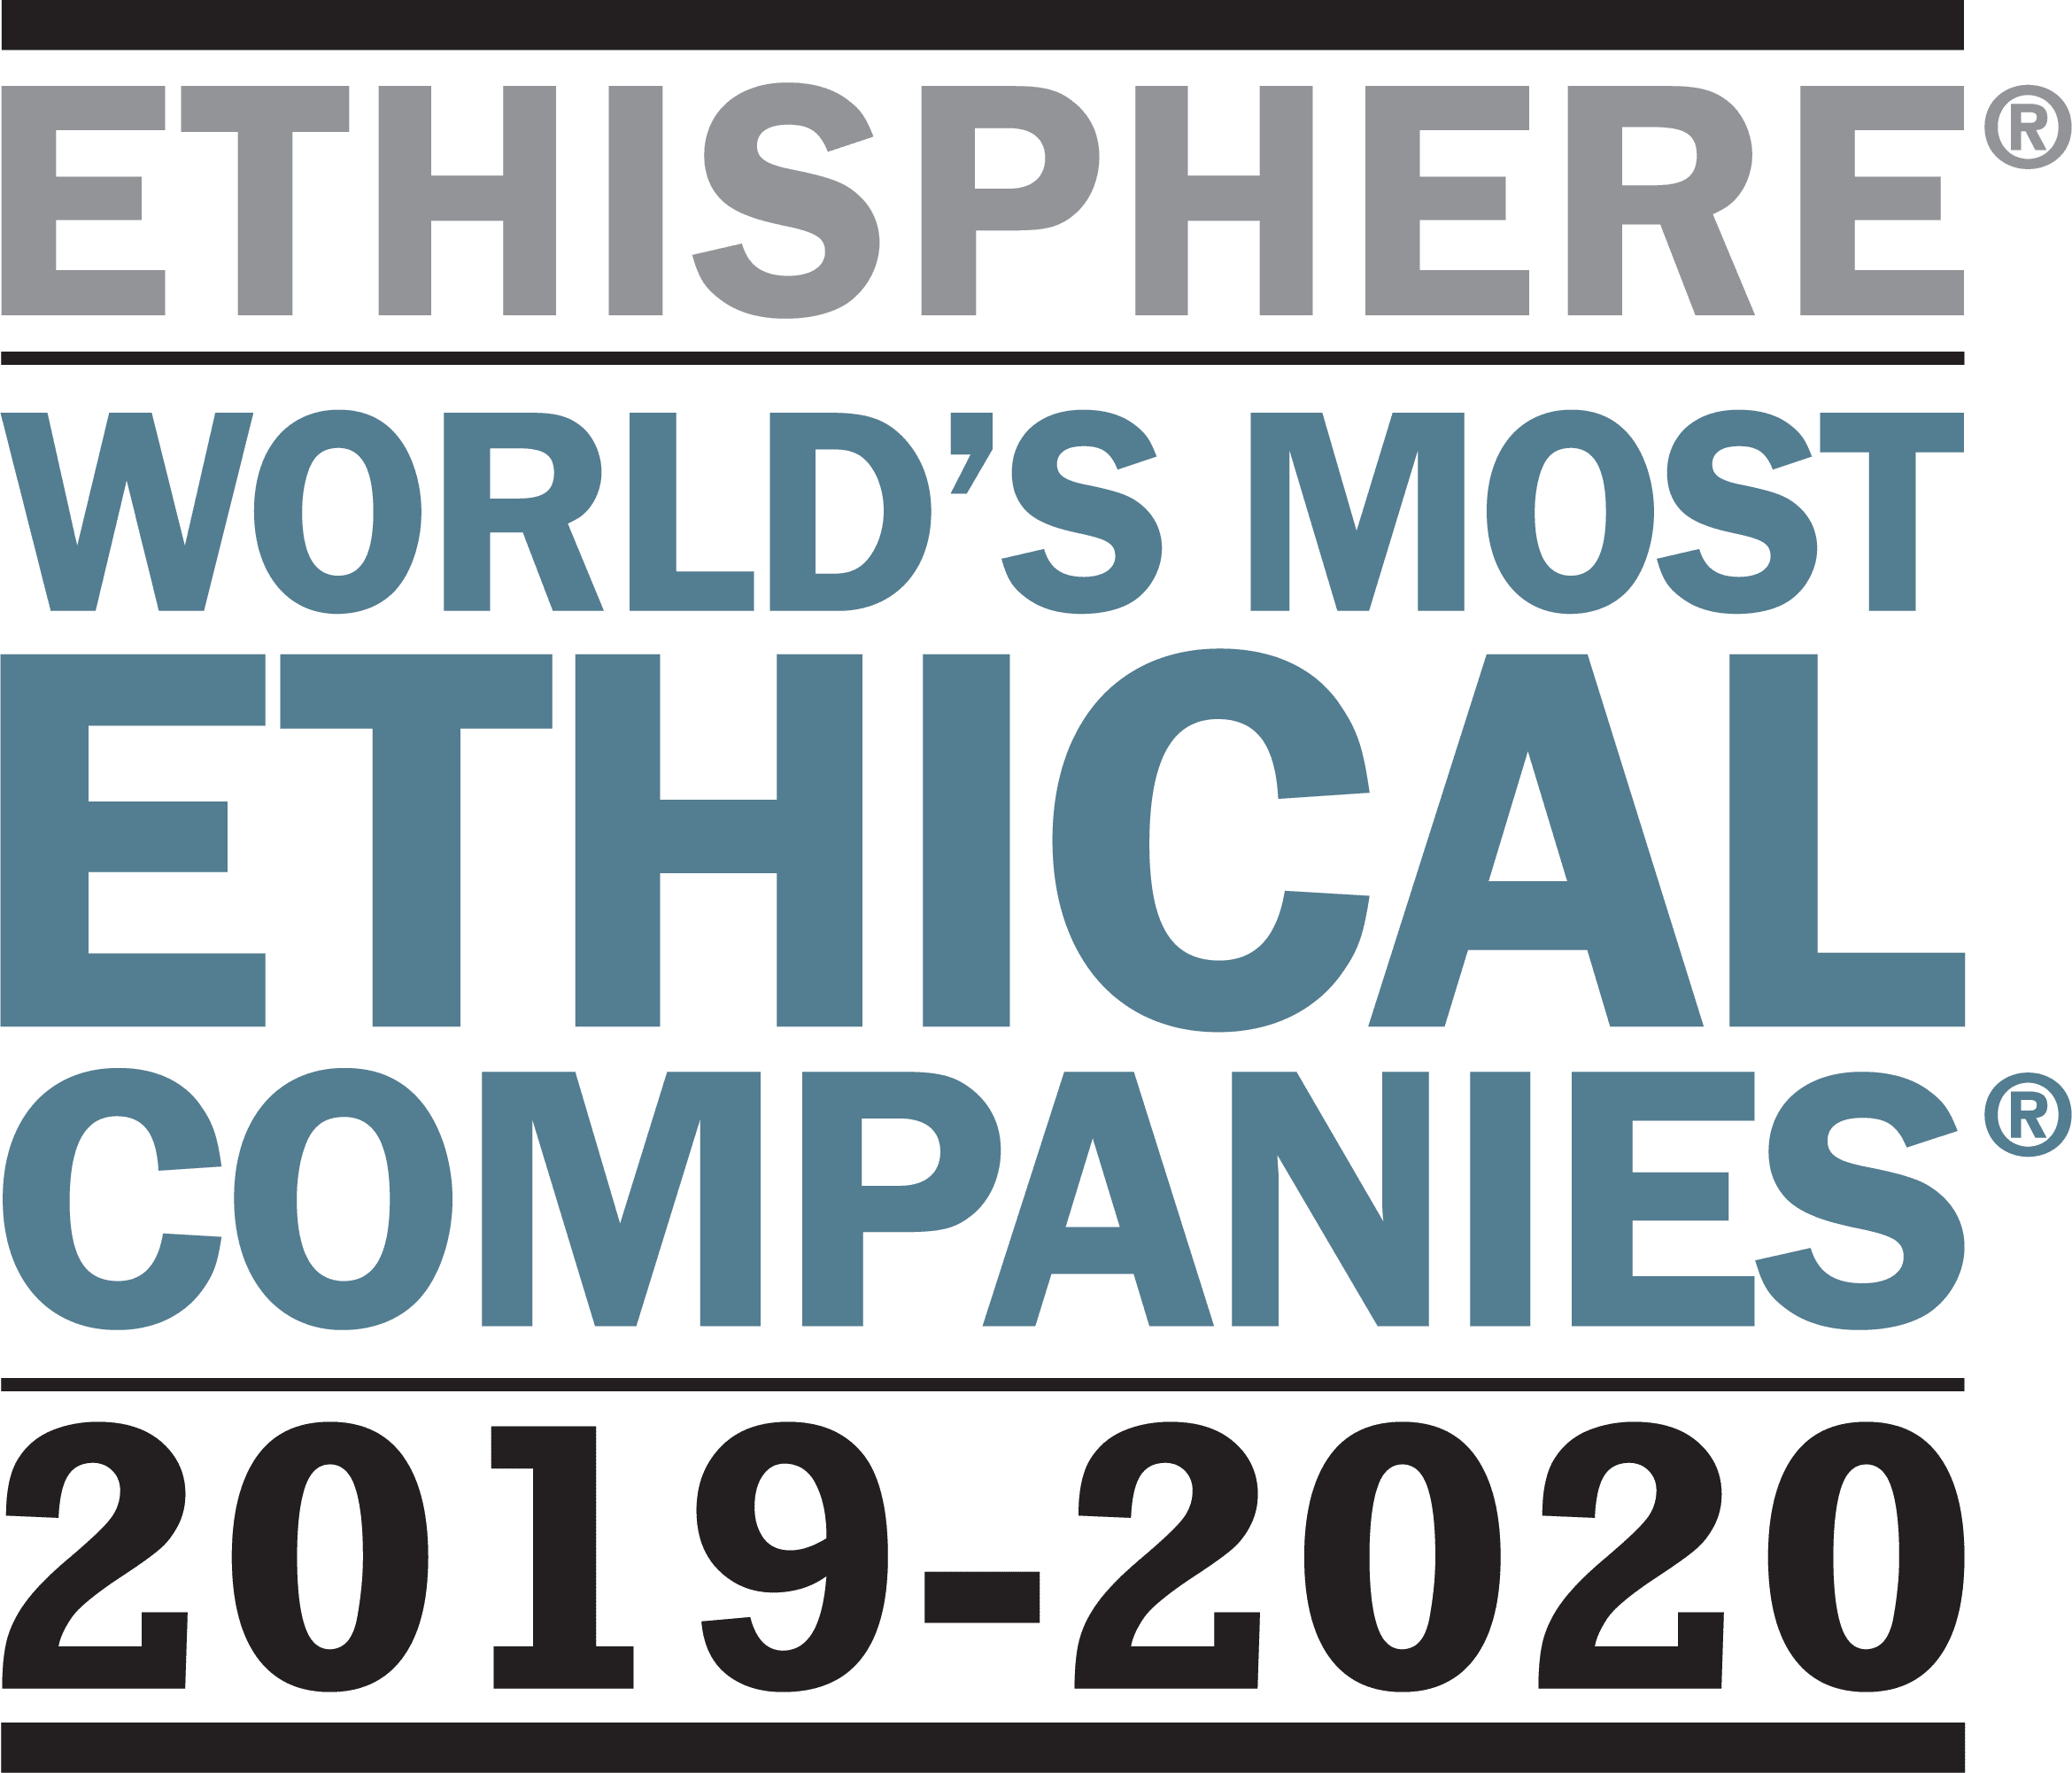 Worlds Most Ethical Companies 2019-2020